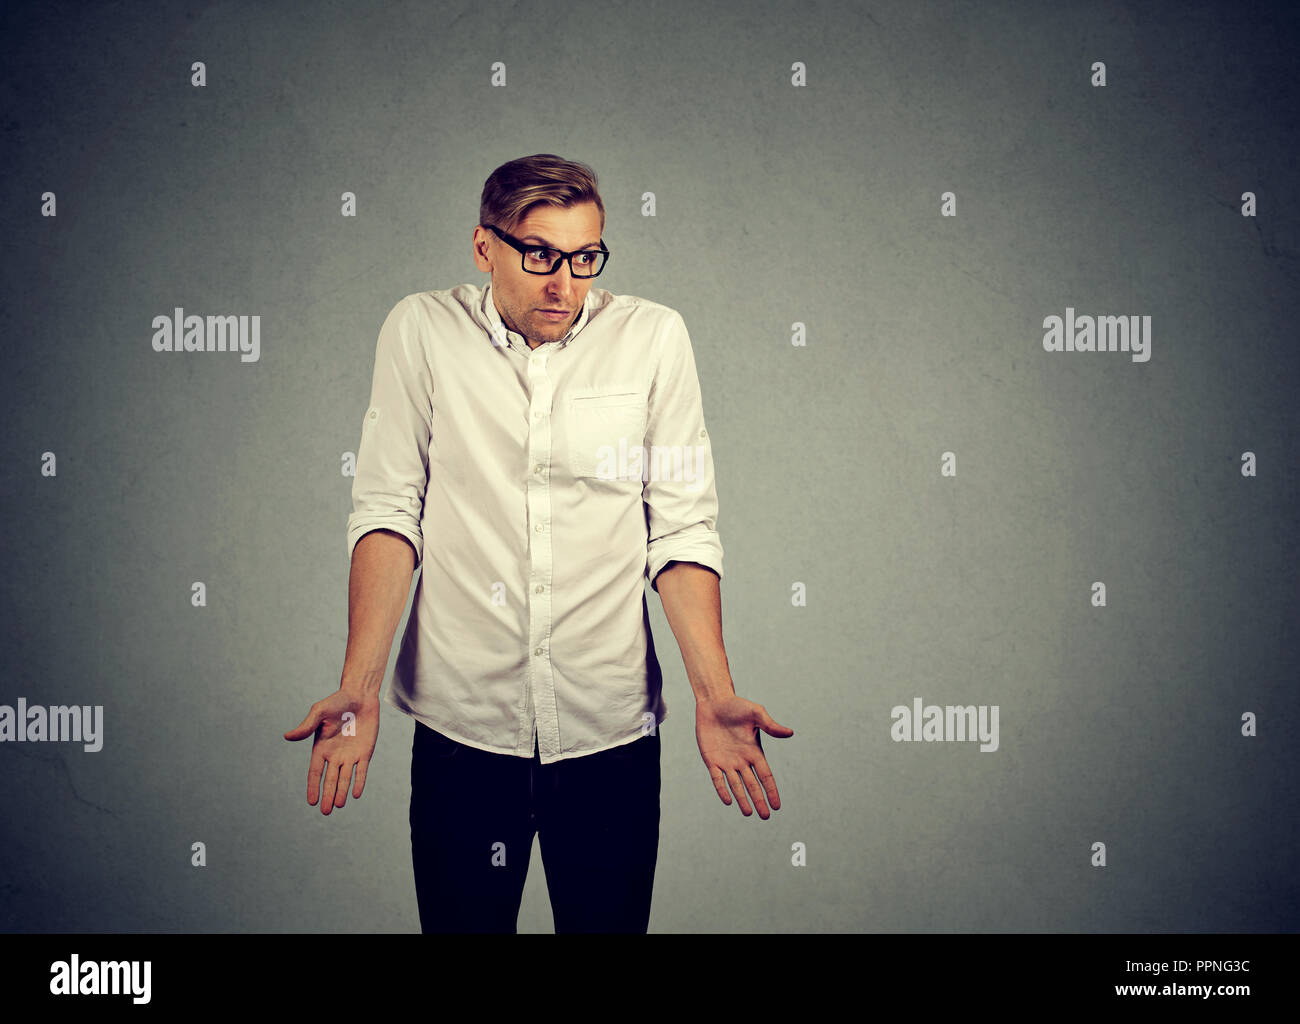 Adult man in glasses and white shirt shrugging shoulders in ignorance looking clueless on gray background - Stock Image